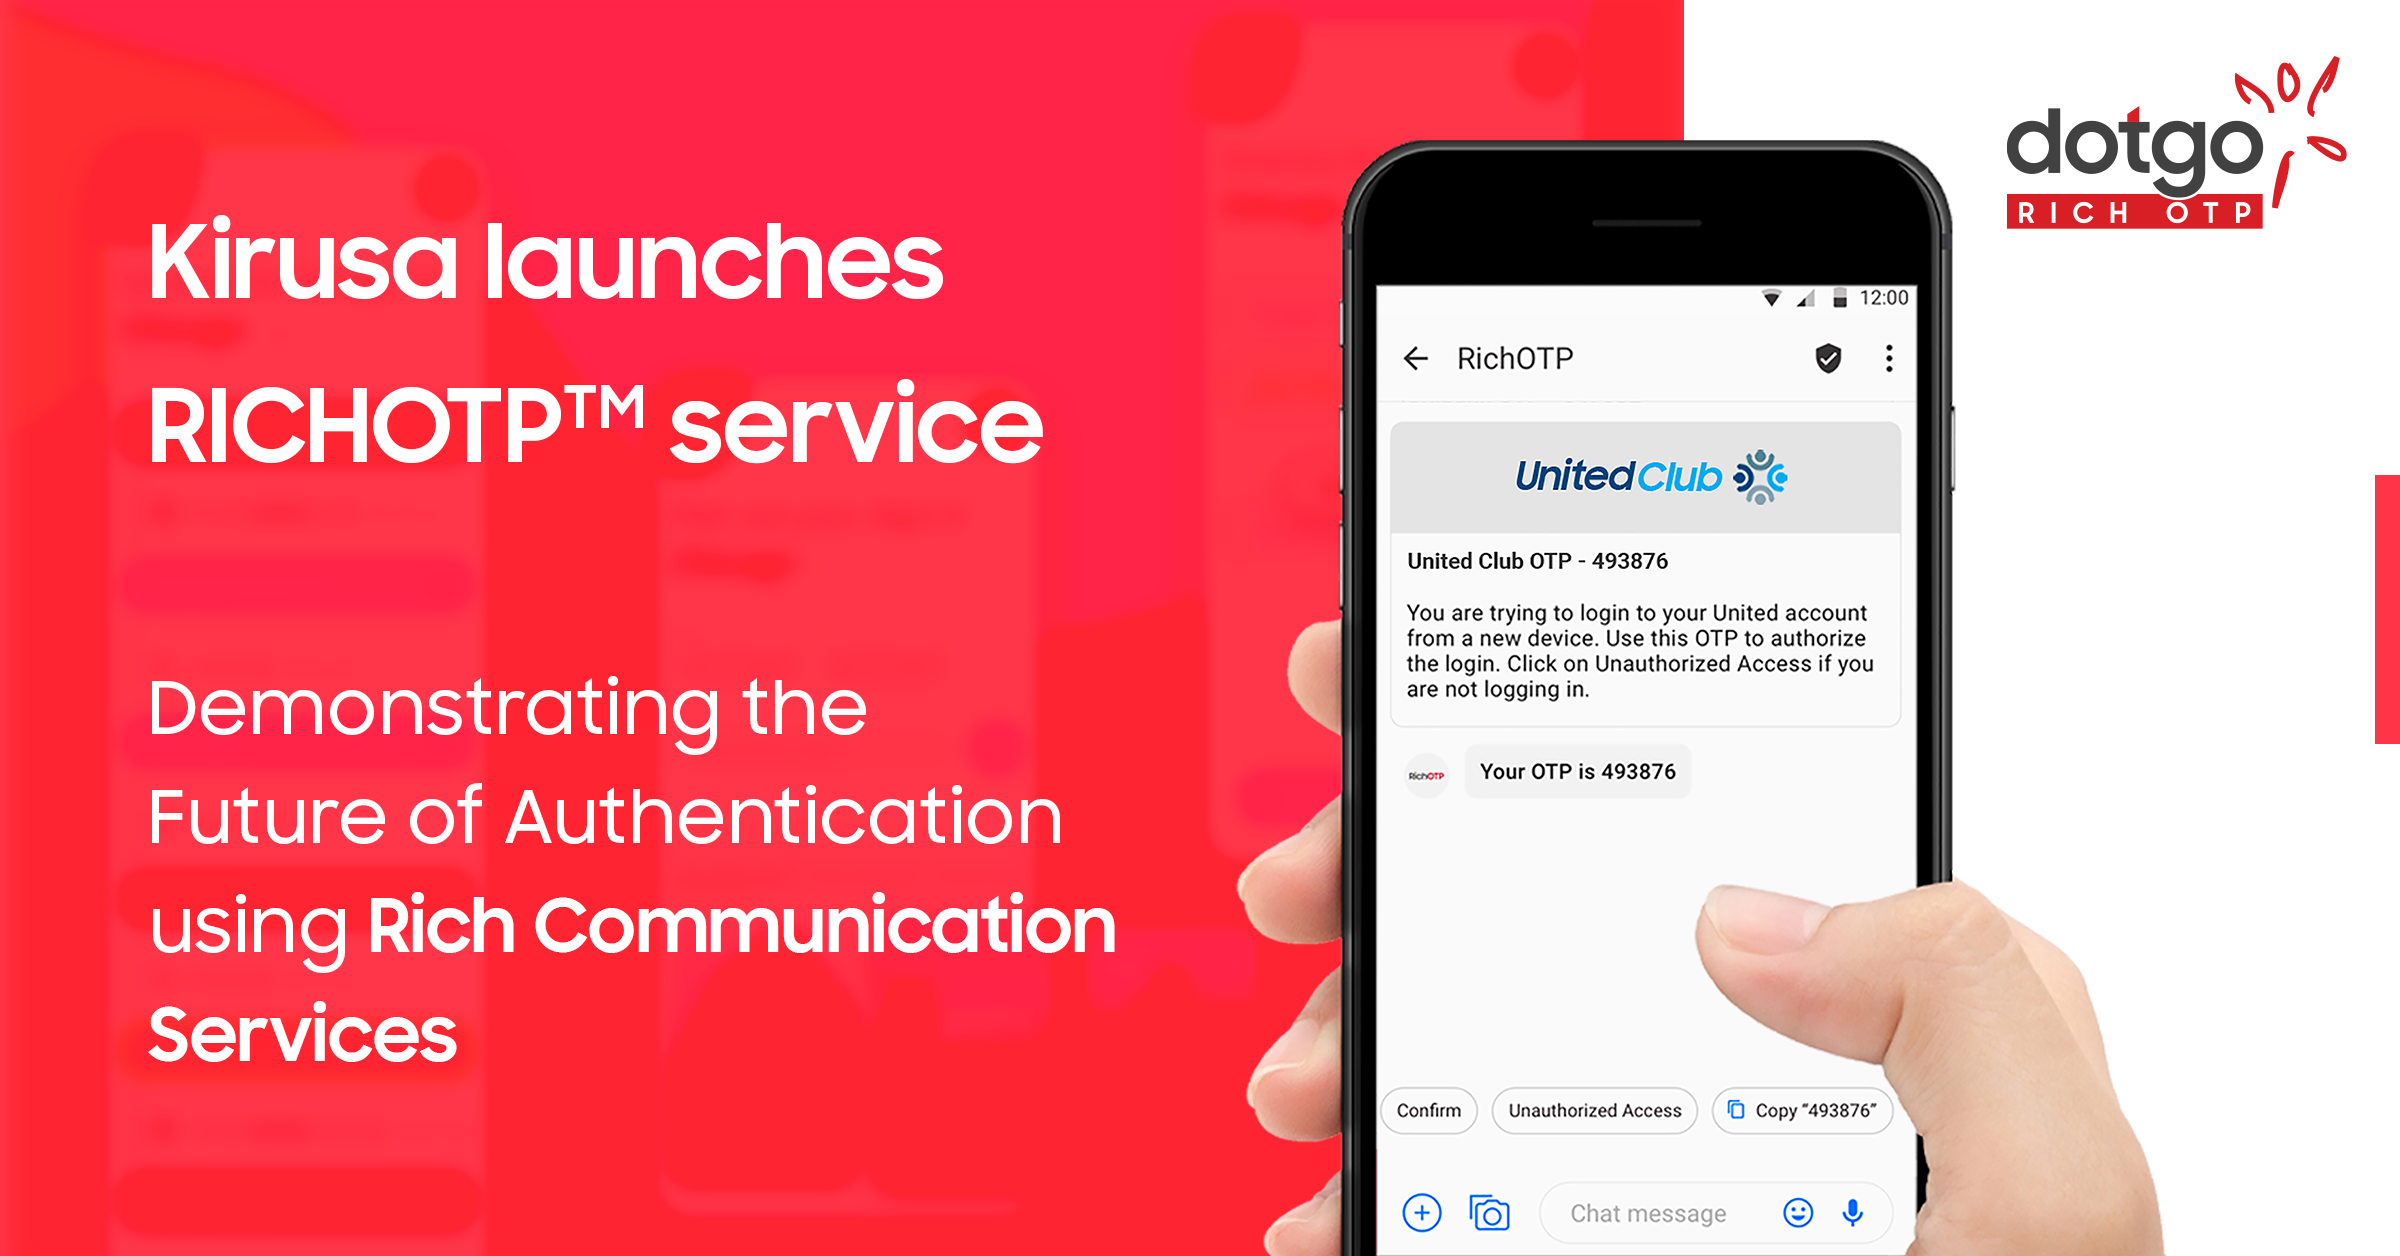 RichOTP service enables brands to send OTPs with rich media capabilities to end-users via the RCS Messaging Channel